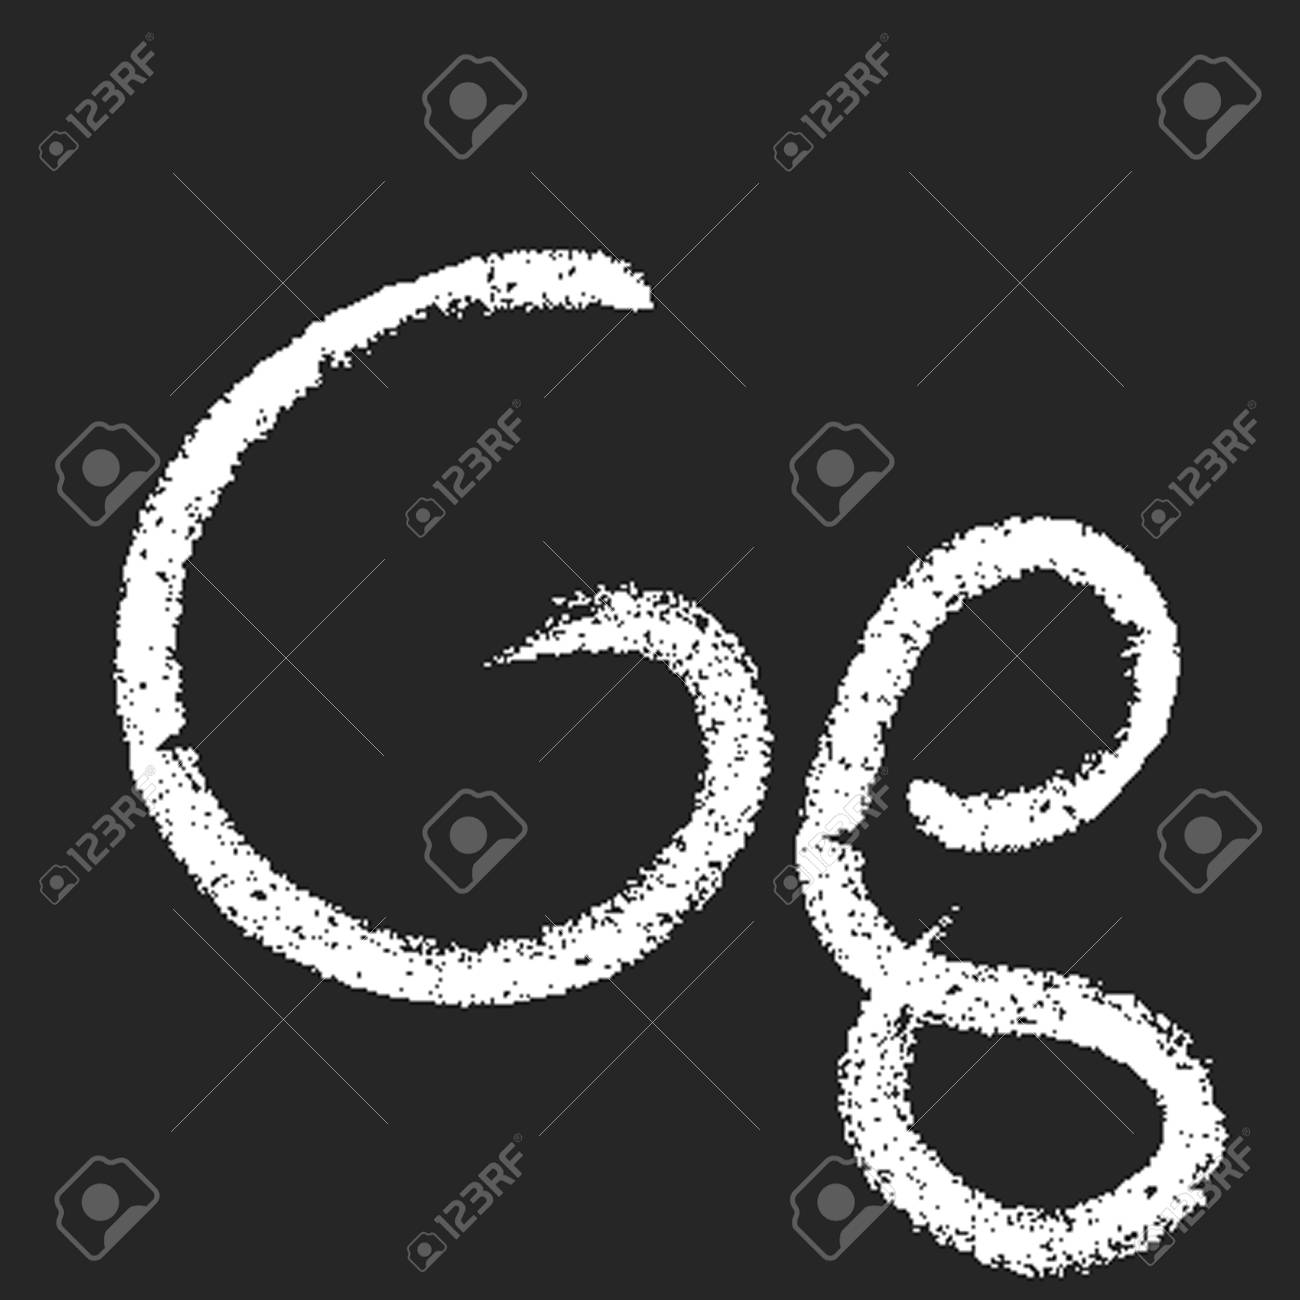 pencil or charcoal chalk alphabet letter. Vector Stock Vector - 9647291